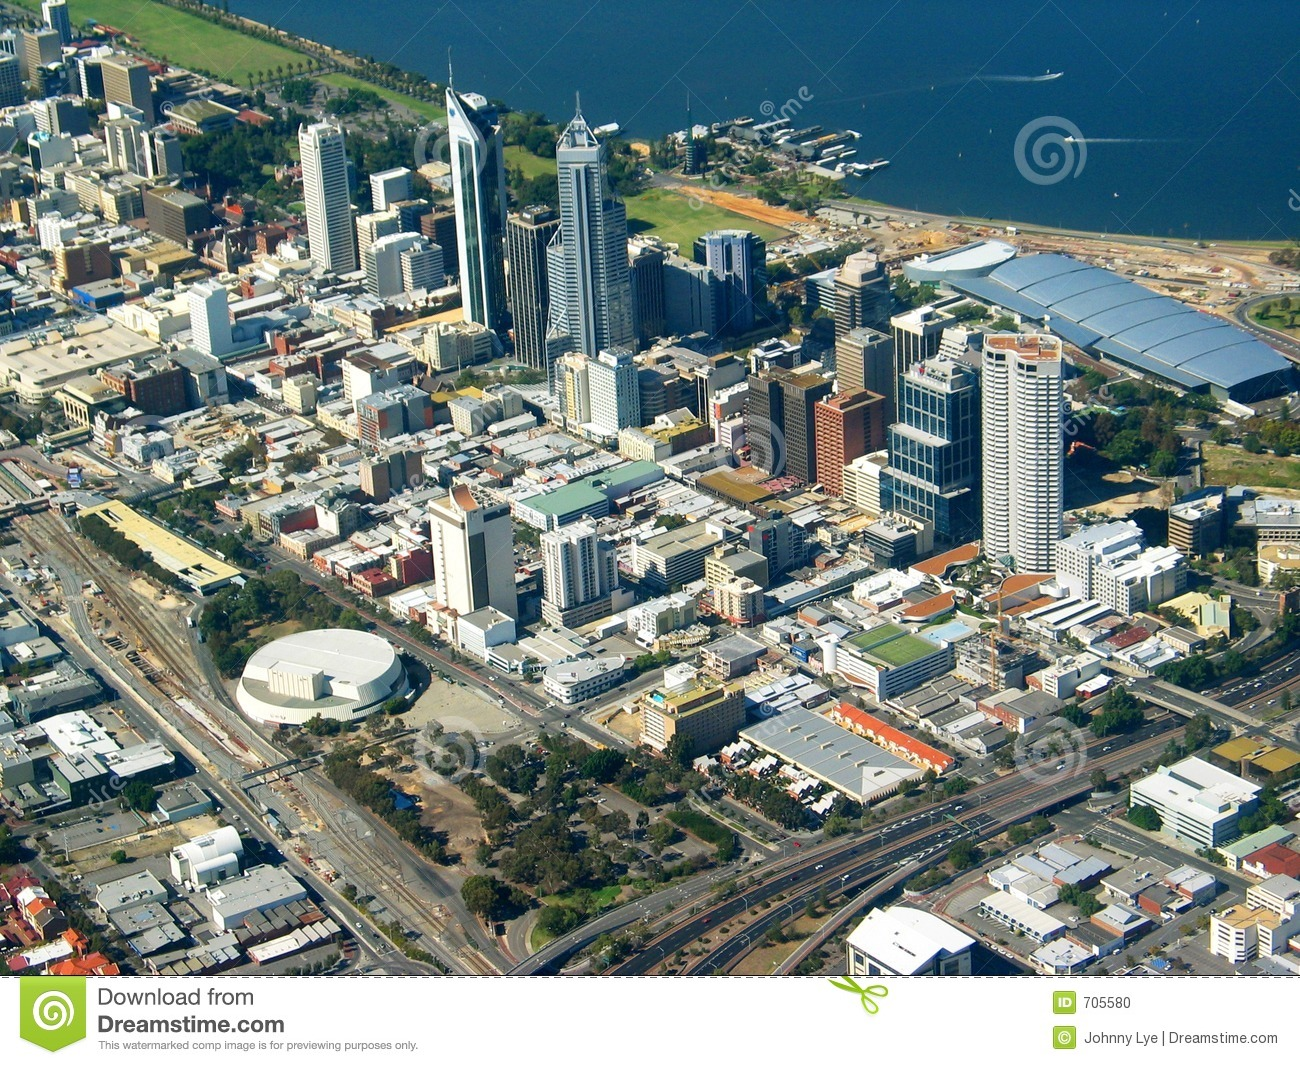 Up to date satellite images in Perth